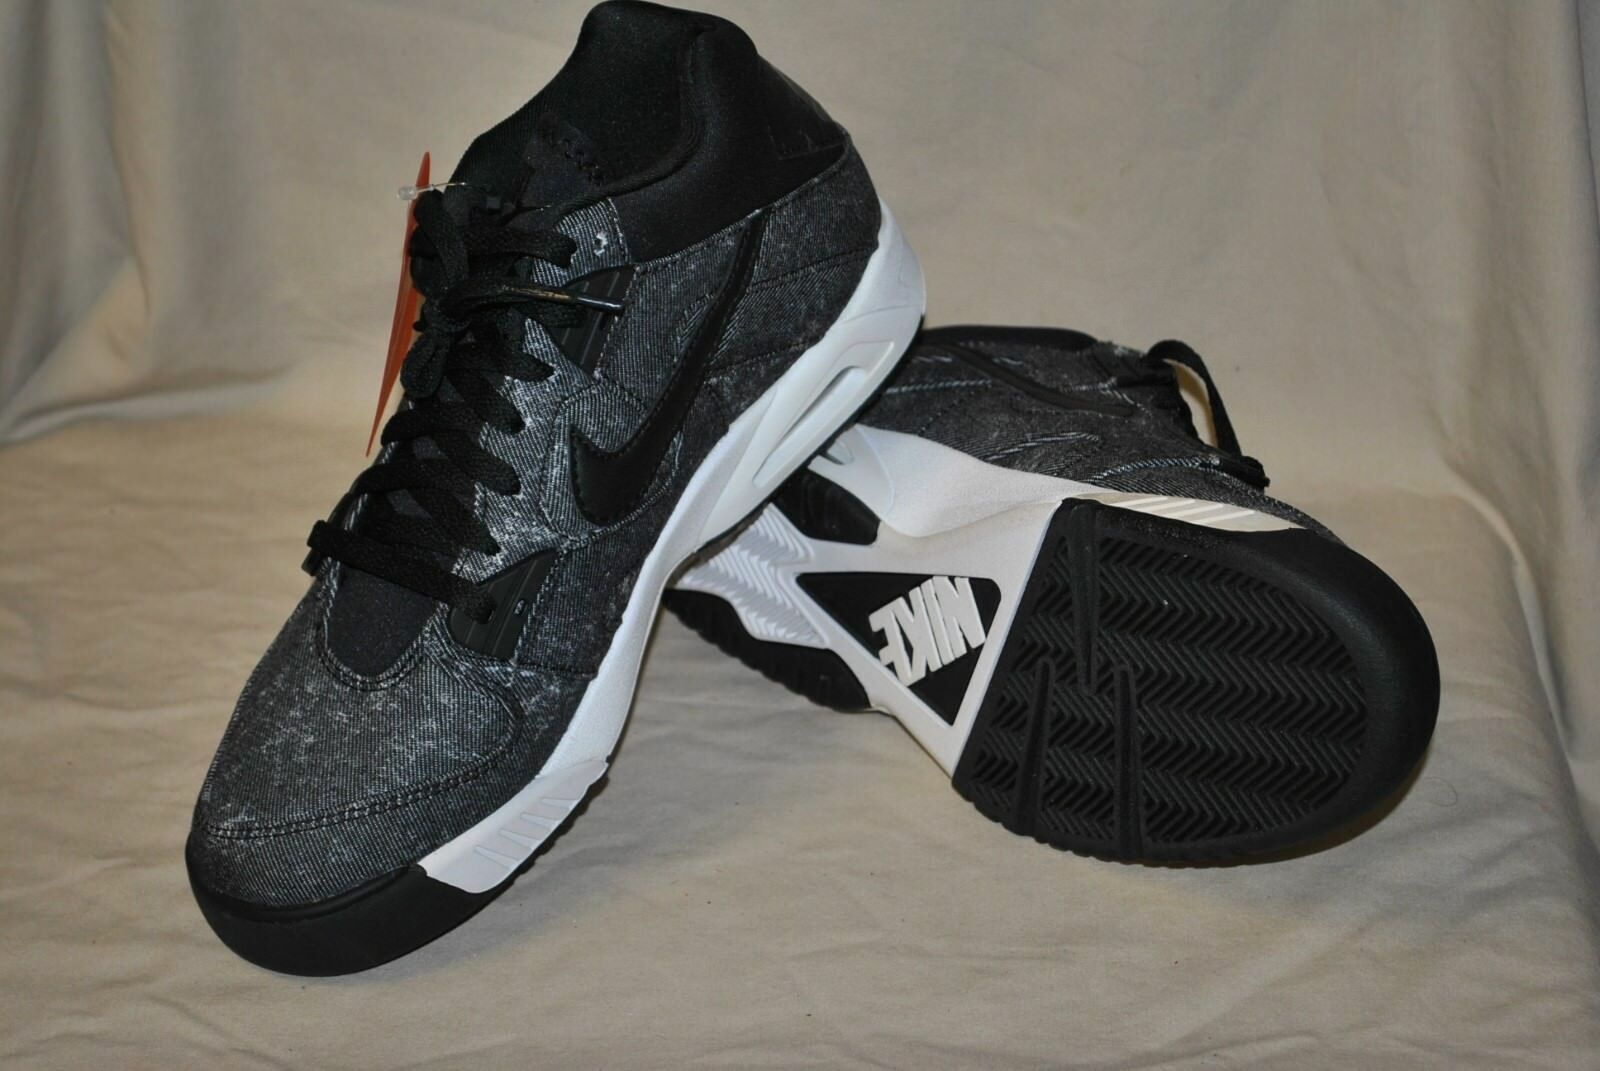 Nike Air Tech Challenge III BadAzz Shoes, Blk/Anthracite-White, 749957-001 Sz8.5 Cheap women's shoes women's shoes